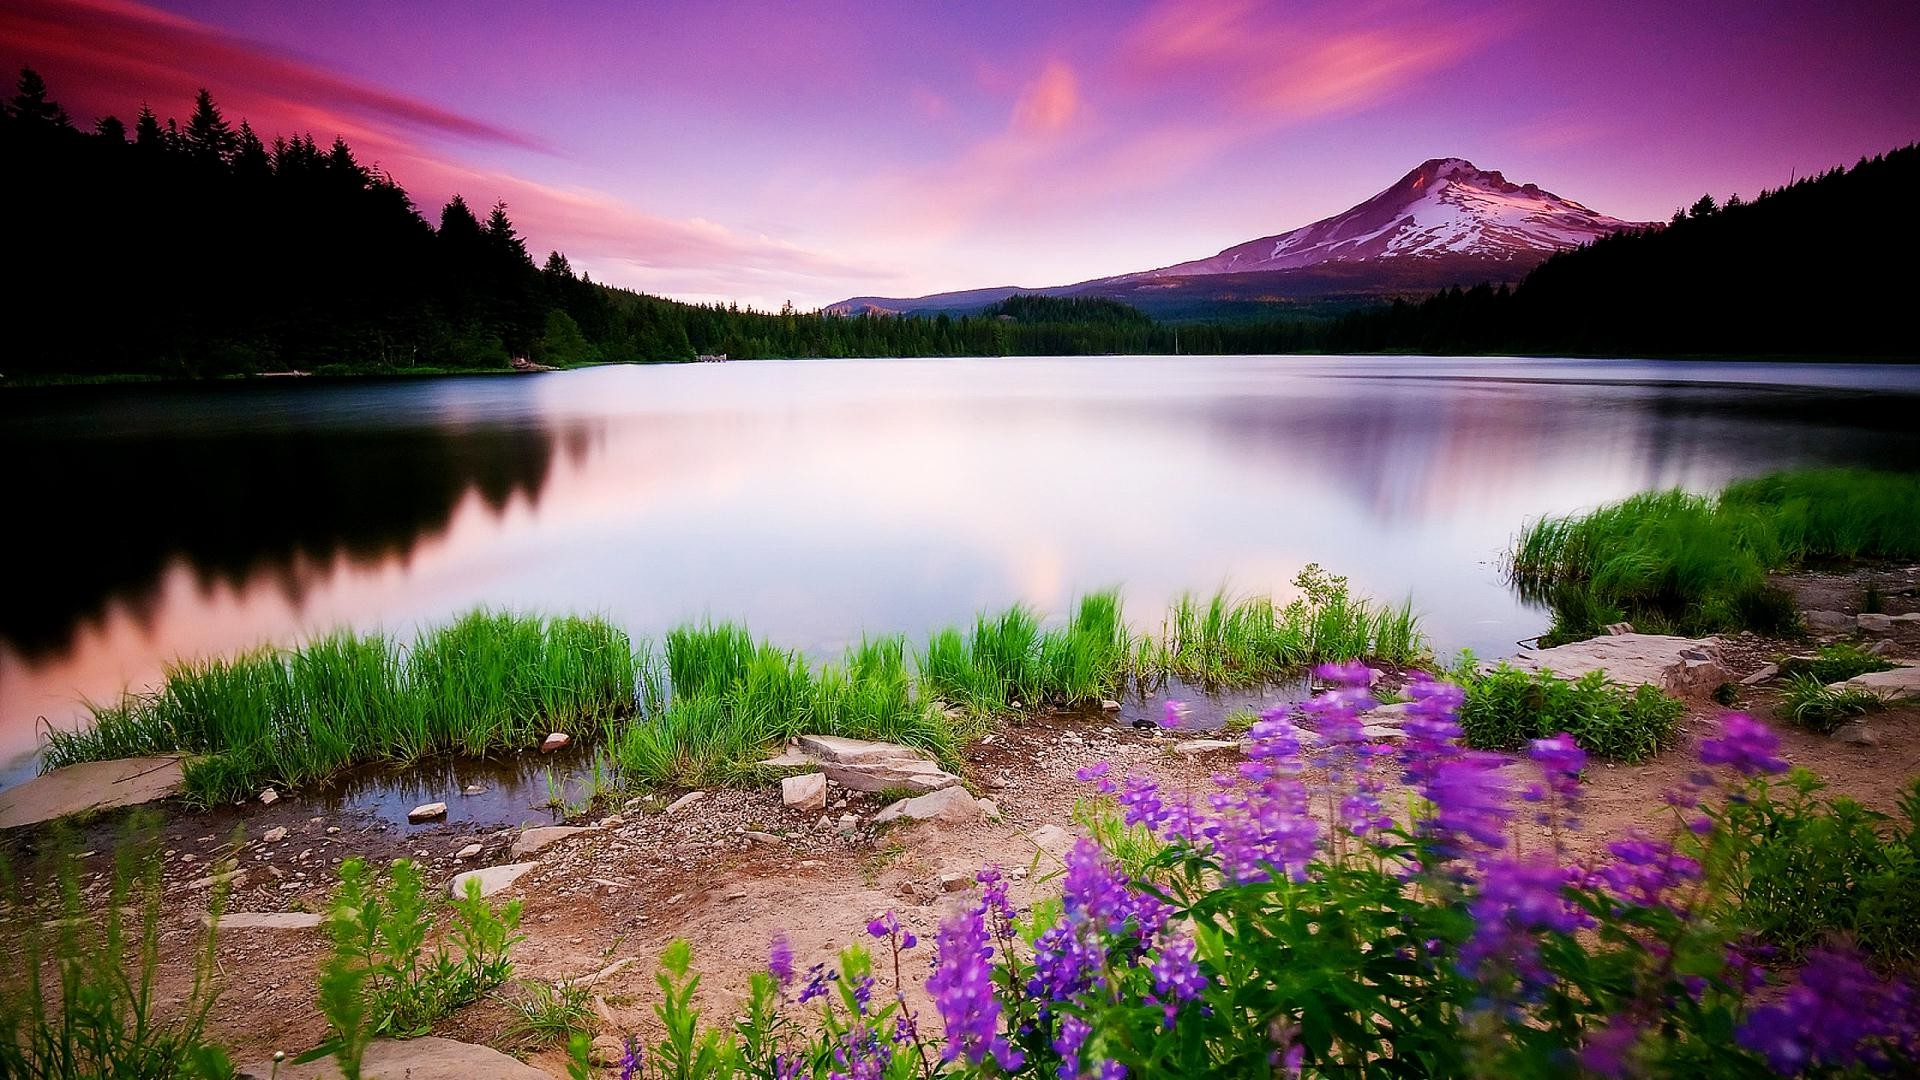 Colorful Nature HD Wallpapers Pictures | One HD Wallpaper ...